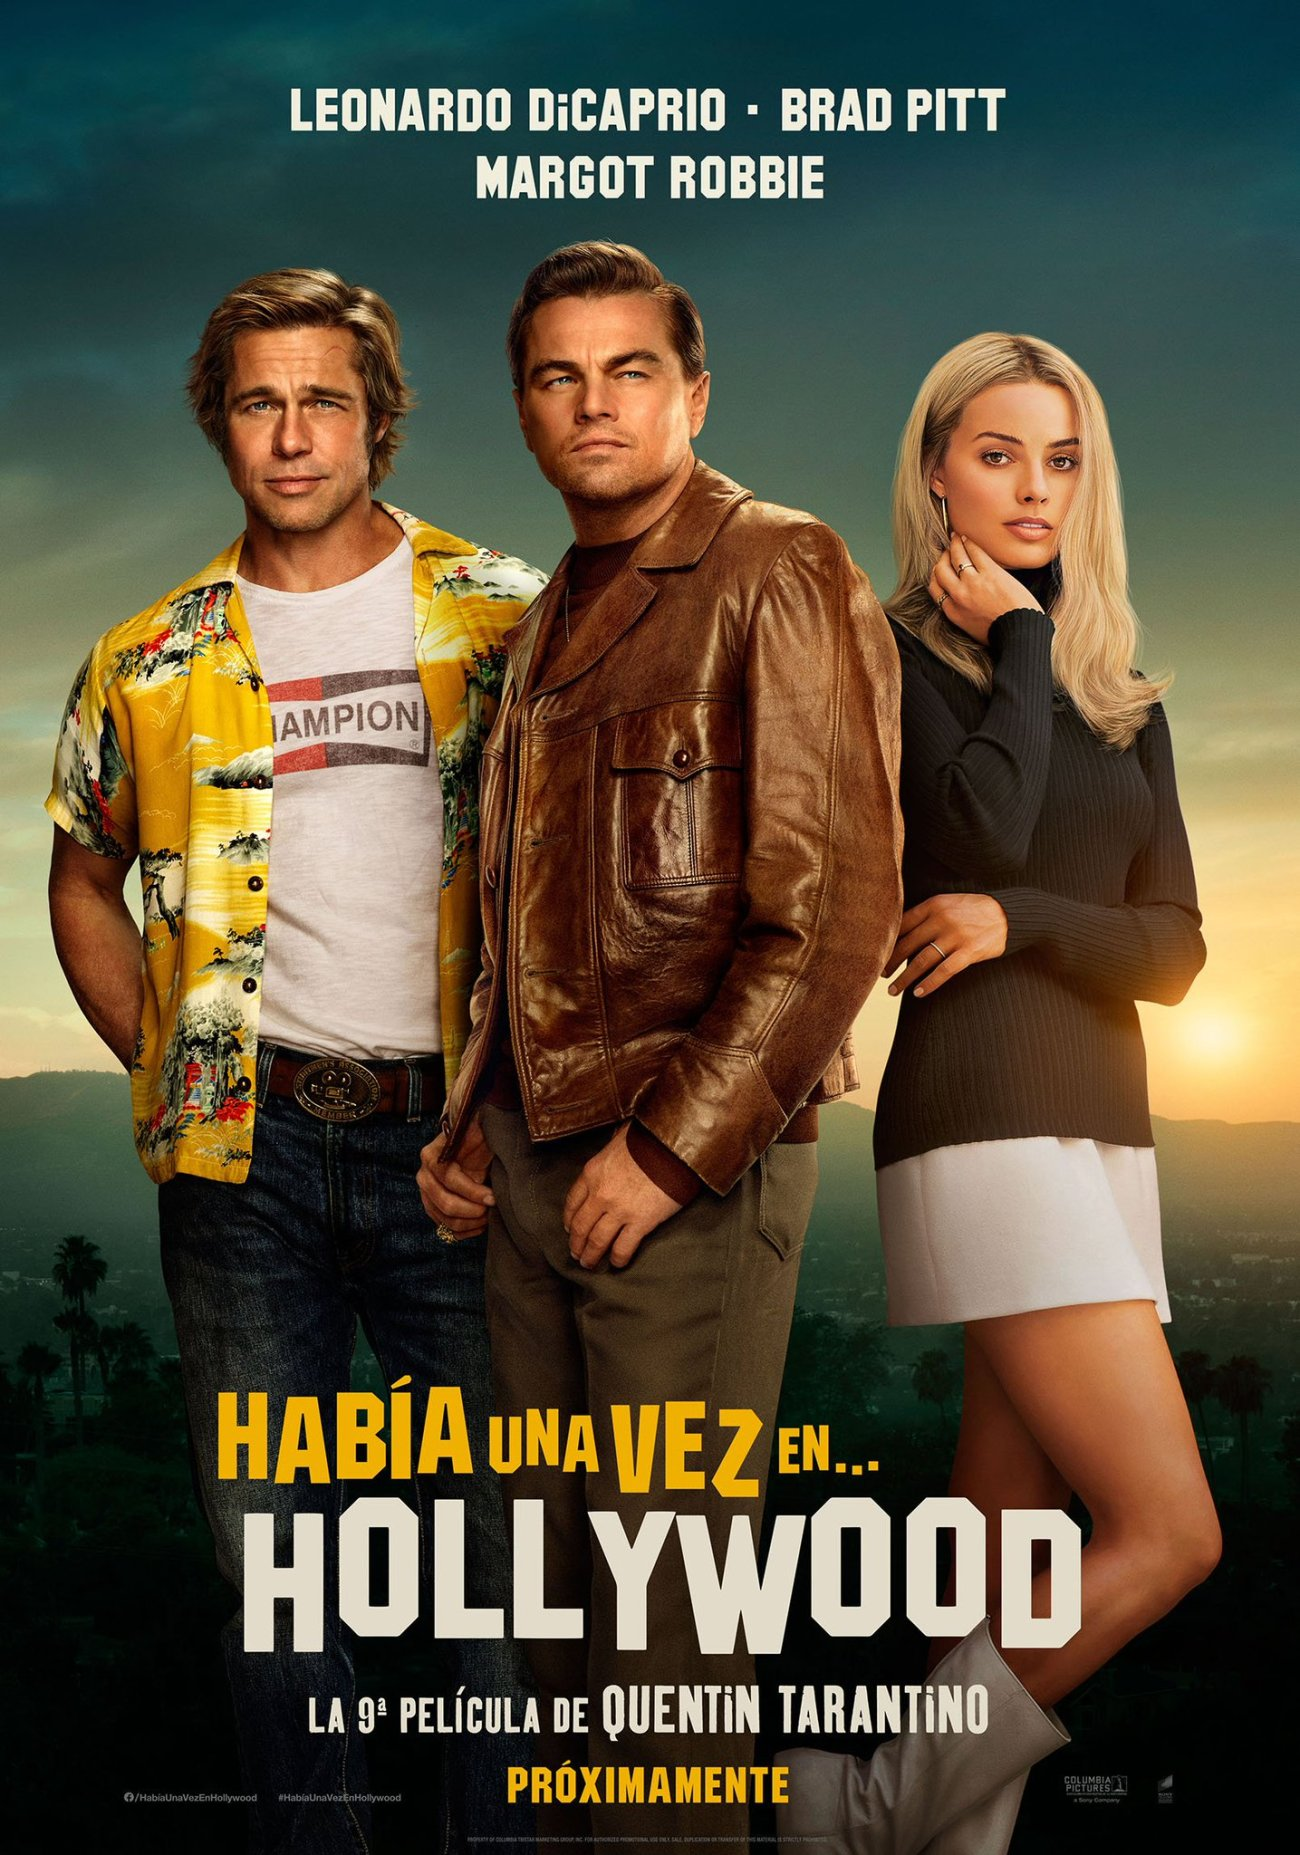 Póster en español de Once Upon a Time in Hollywood (2019). Imagen: SonyPicturesMX Twitter (@SonyPicturesMX).